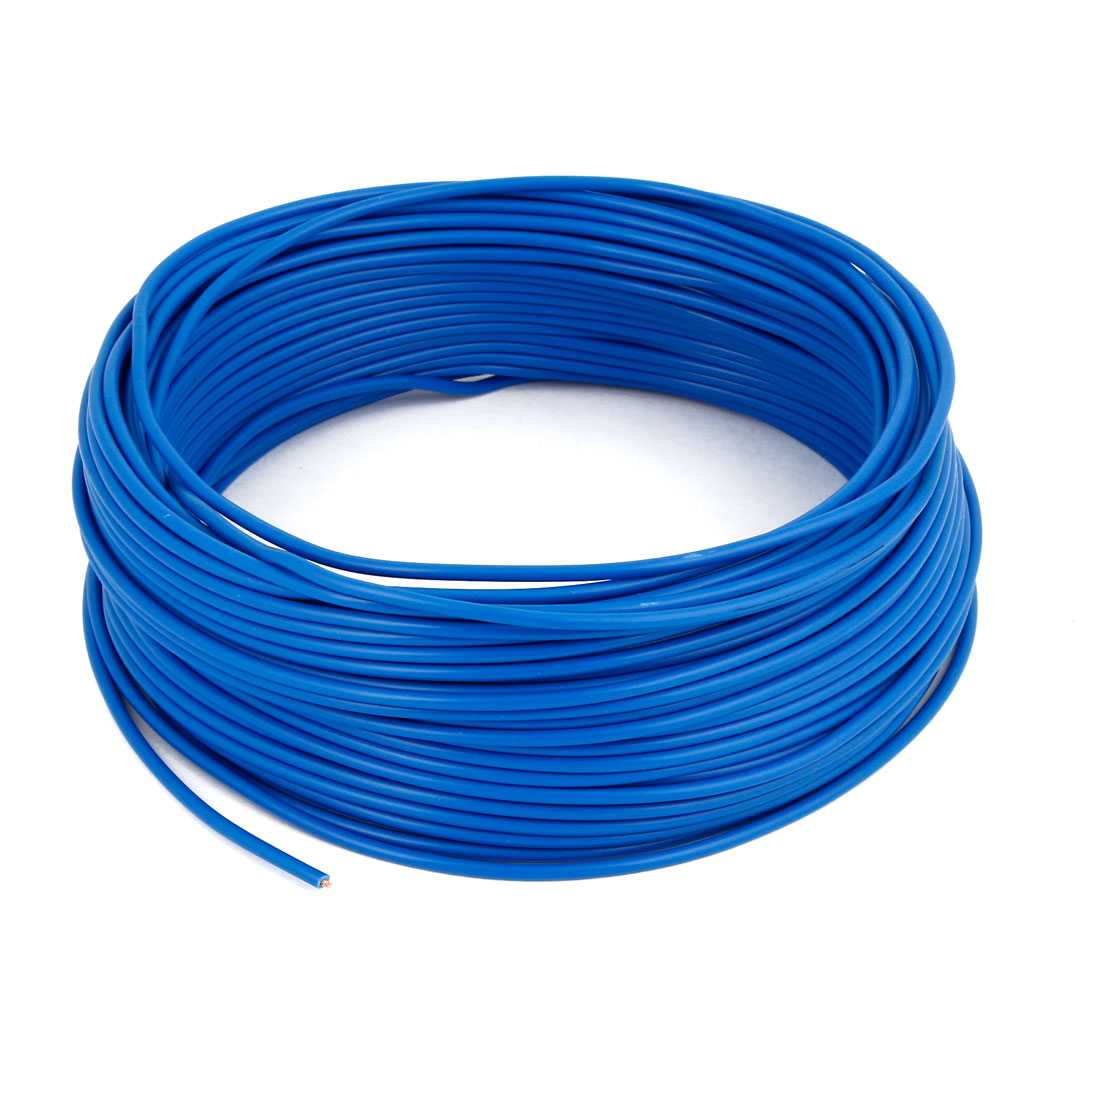 Unique Bargains Vehicles Blue Power Amplifier Wire Primary Cable 30M 98Ft Length Accessory